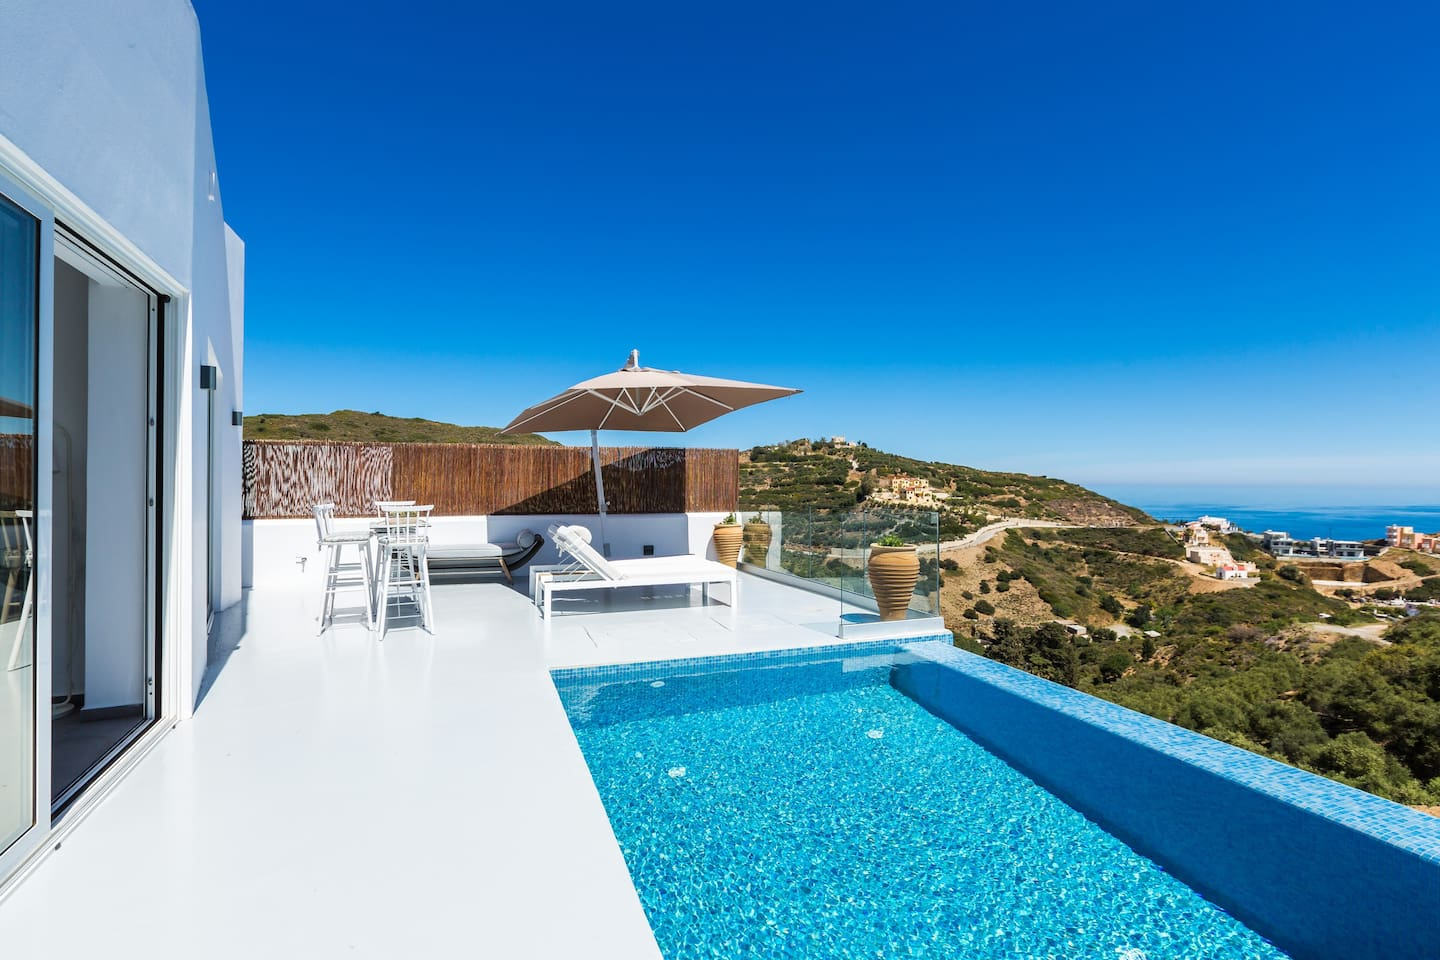 Yasmin Villa, offers magnificent sea views thanks to its elevated position!